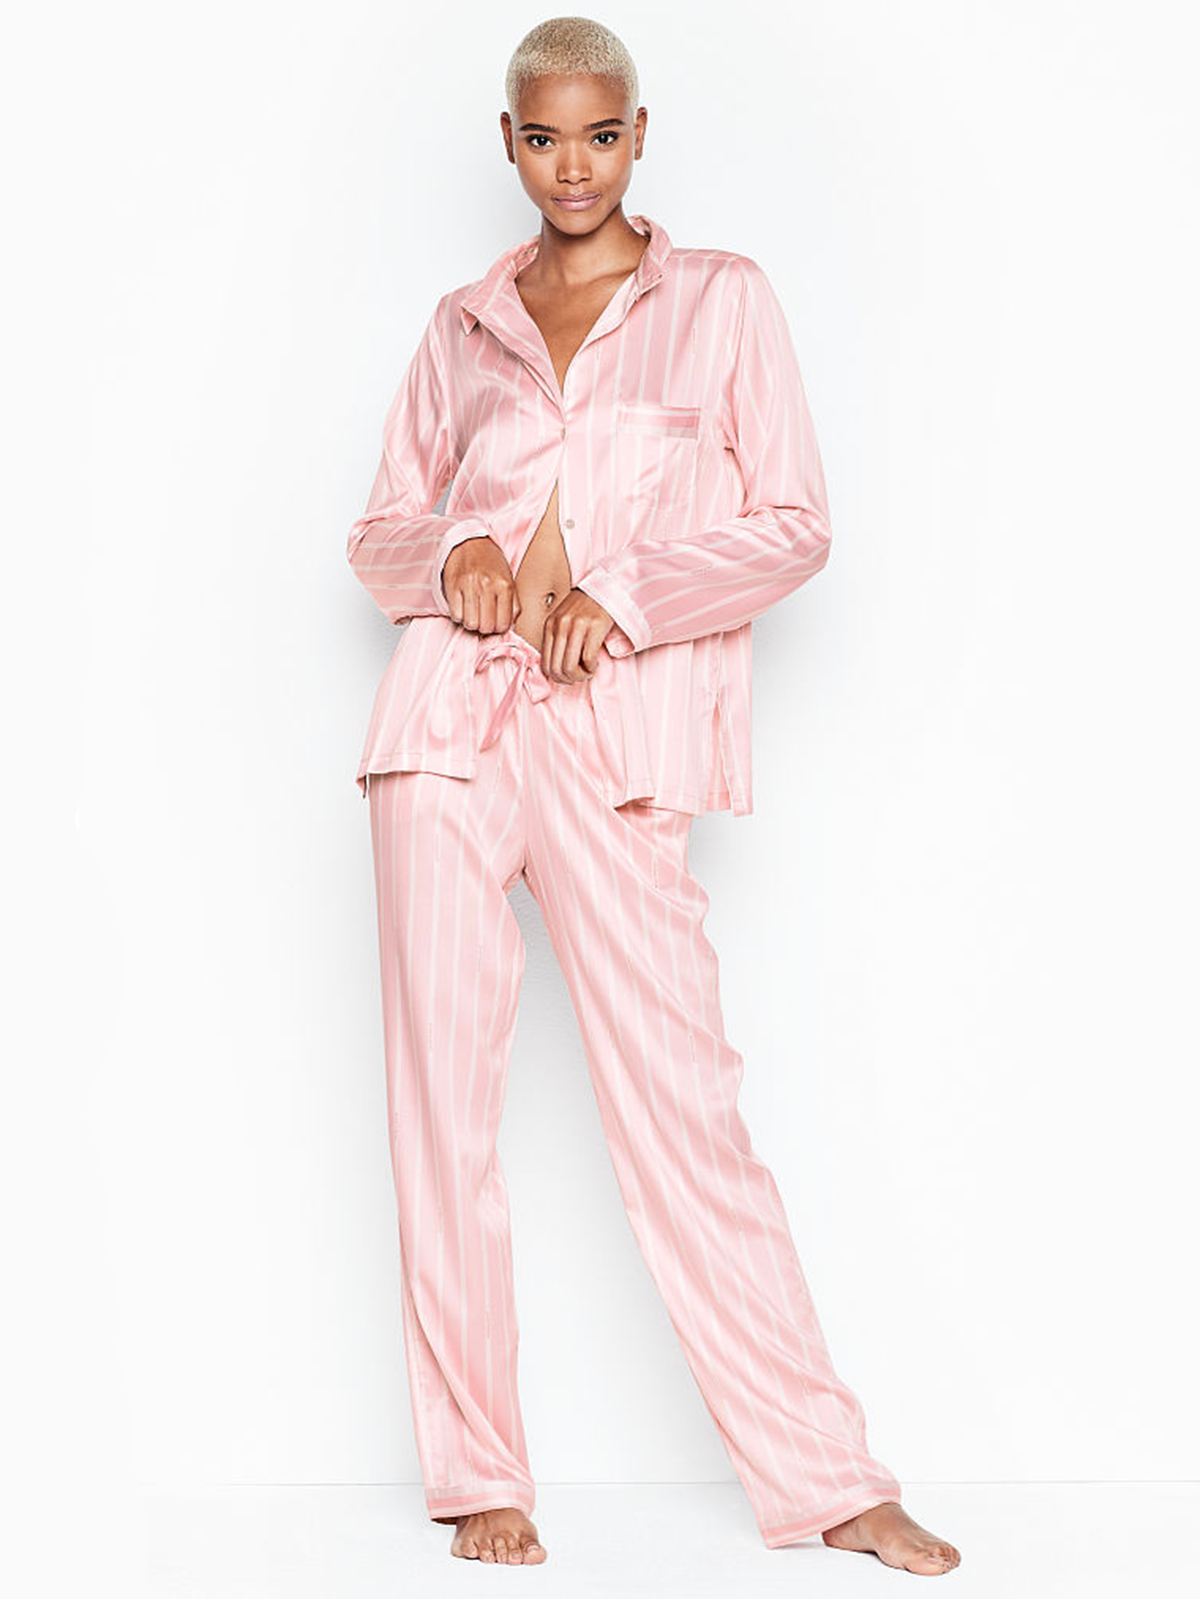 Sleep in Style With 40% Off This Luxurious Victoria's Secret Pajama Set